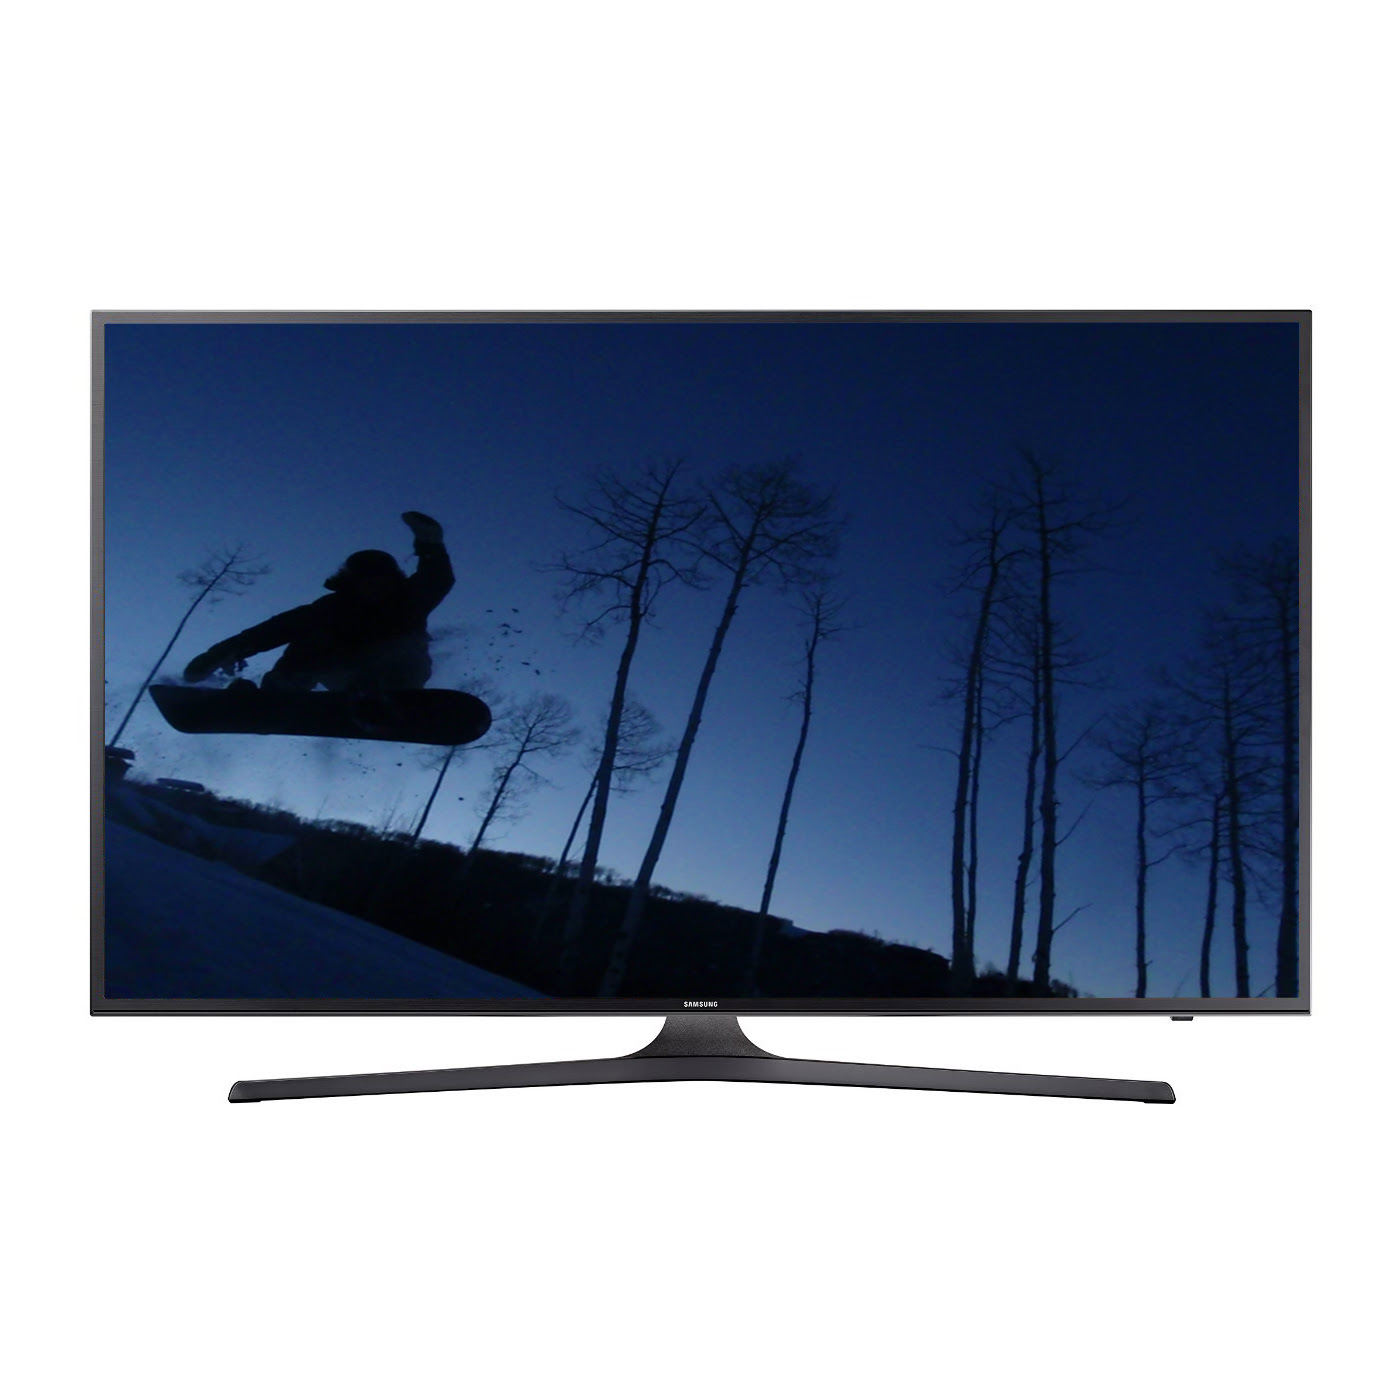 Refurbished Samsung 55. 4K Ultra Hd Smart Led Hdtv W\/ Wifi-UN55KU6300FXZA